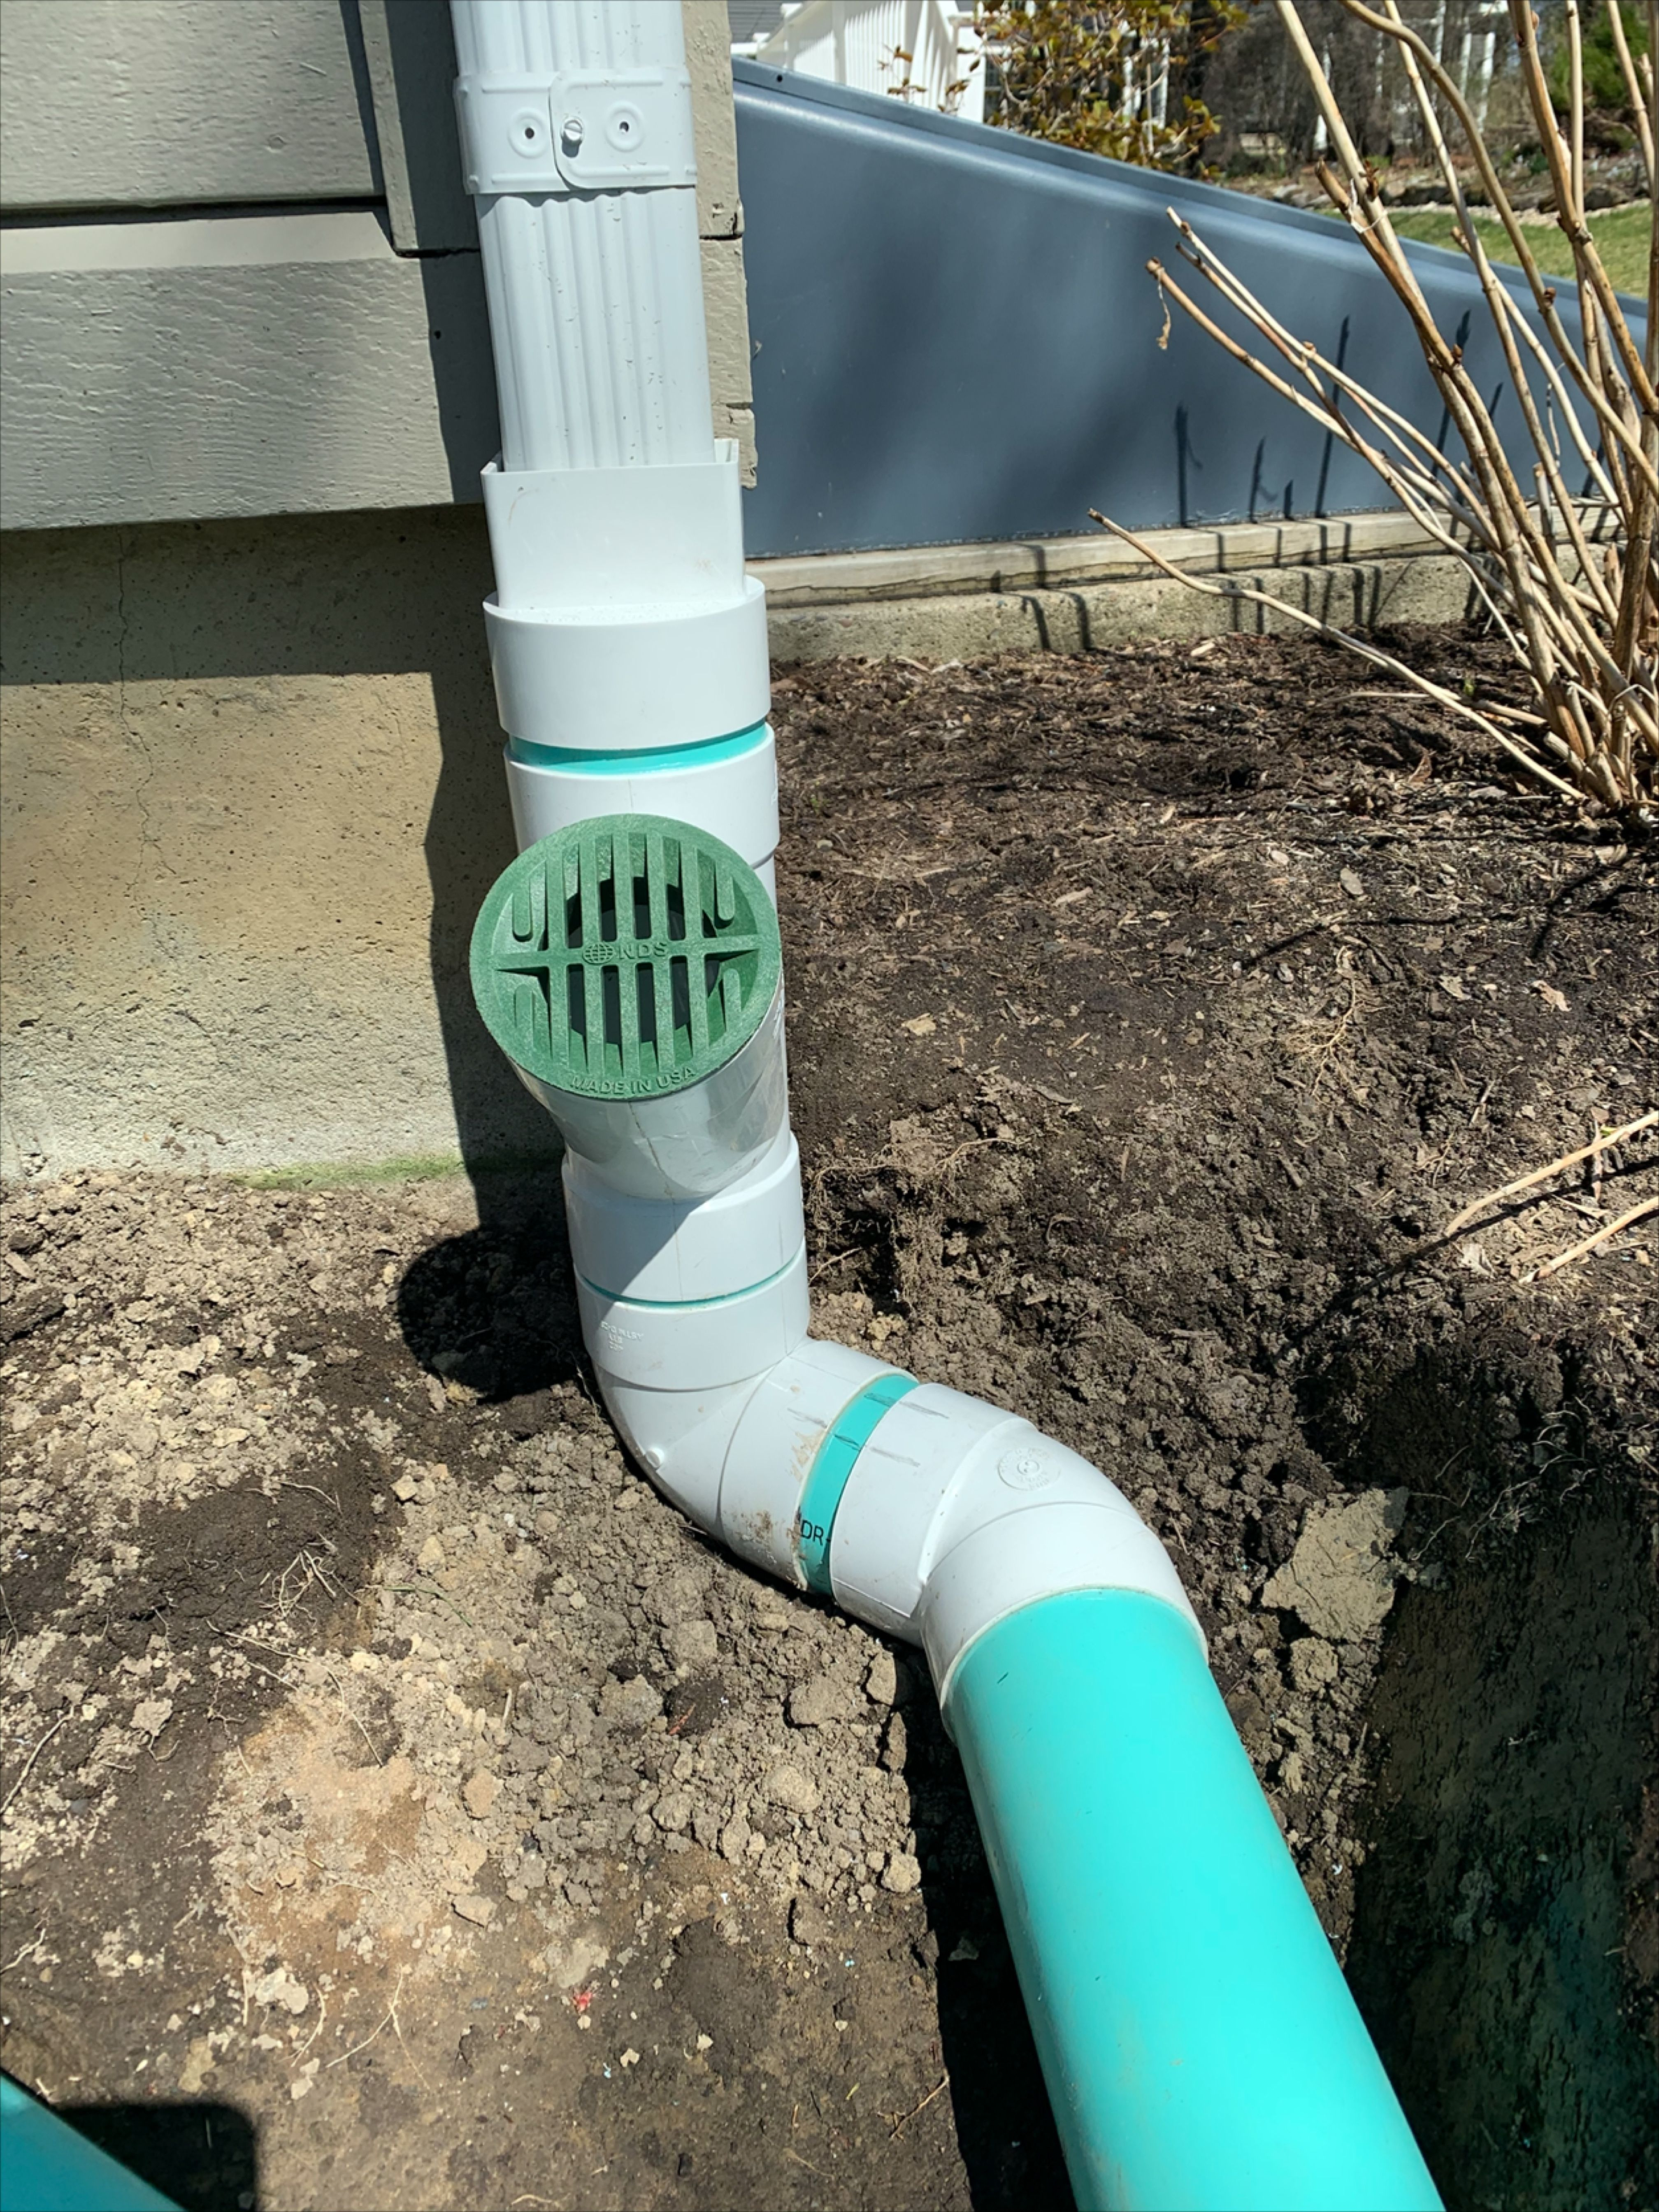 Basement Waterproofing And Drainage Solutions Extending Gutter Downspout With Underground Piping In 2020 Drainage Solutions Drainage Pvc Gutters